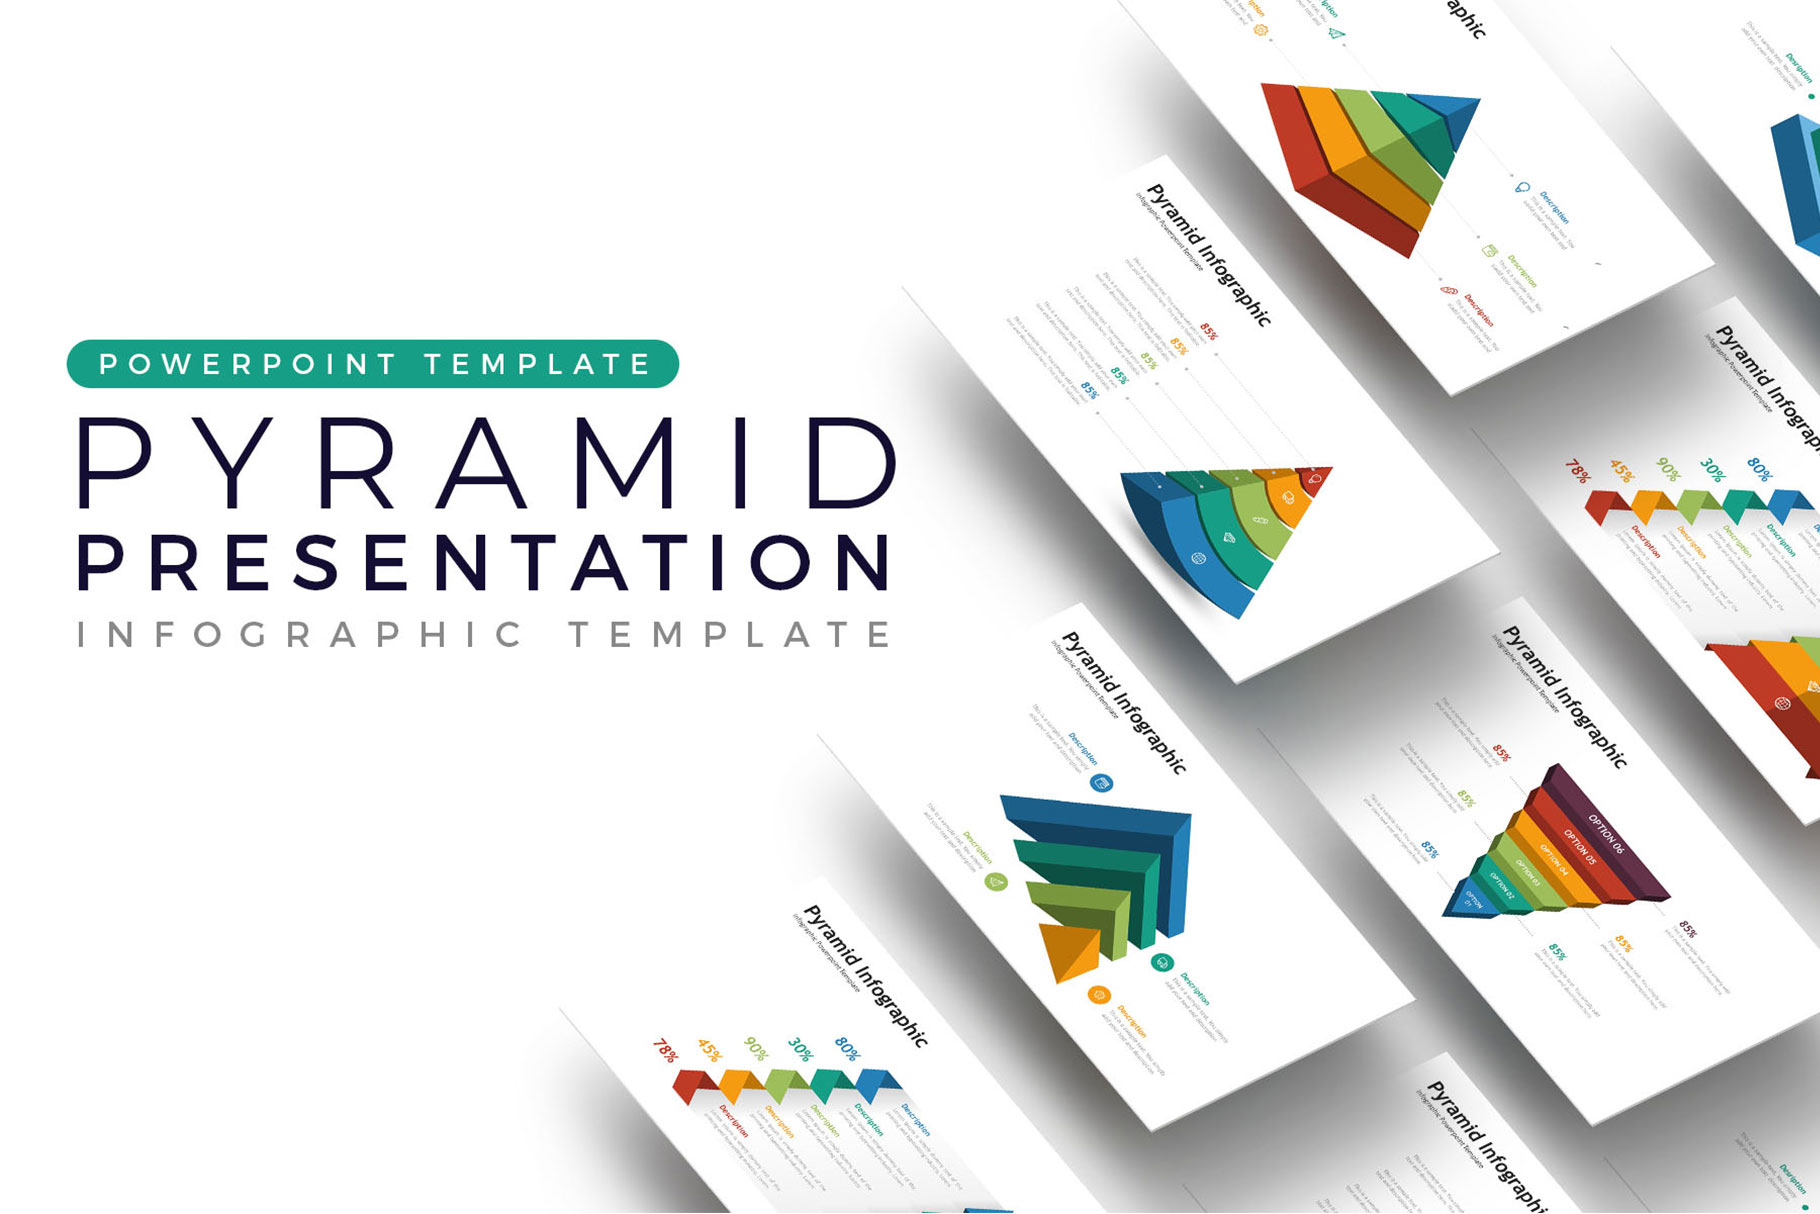 Pyramid Presentation - Infographic Template example image 1